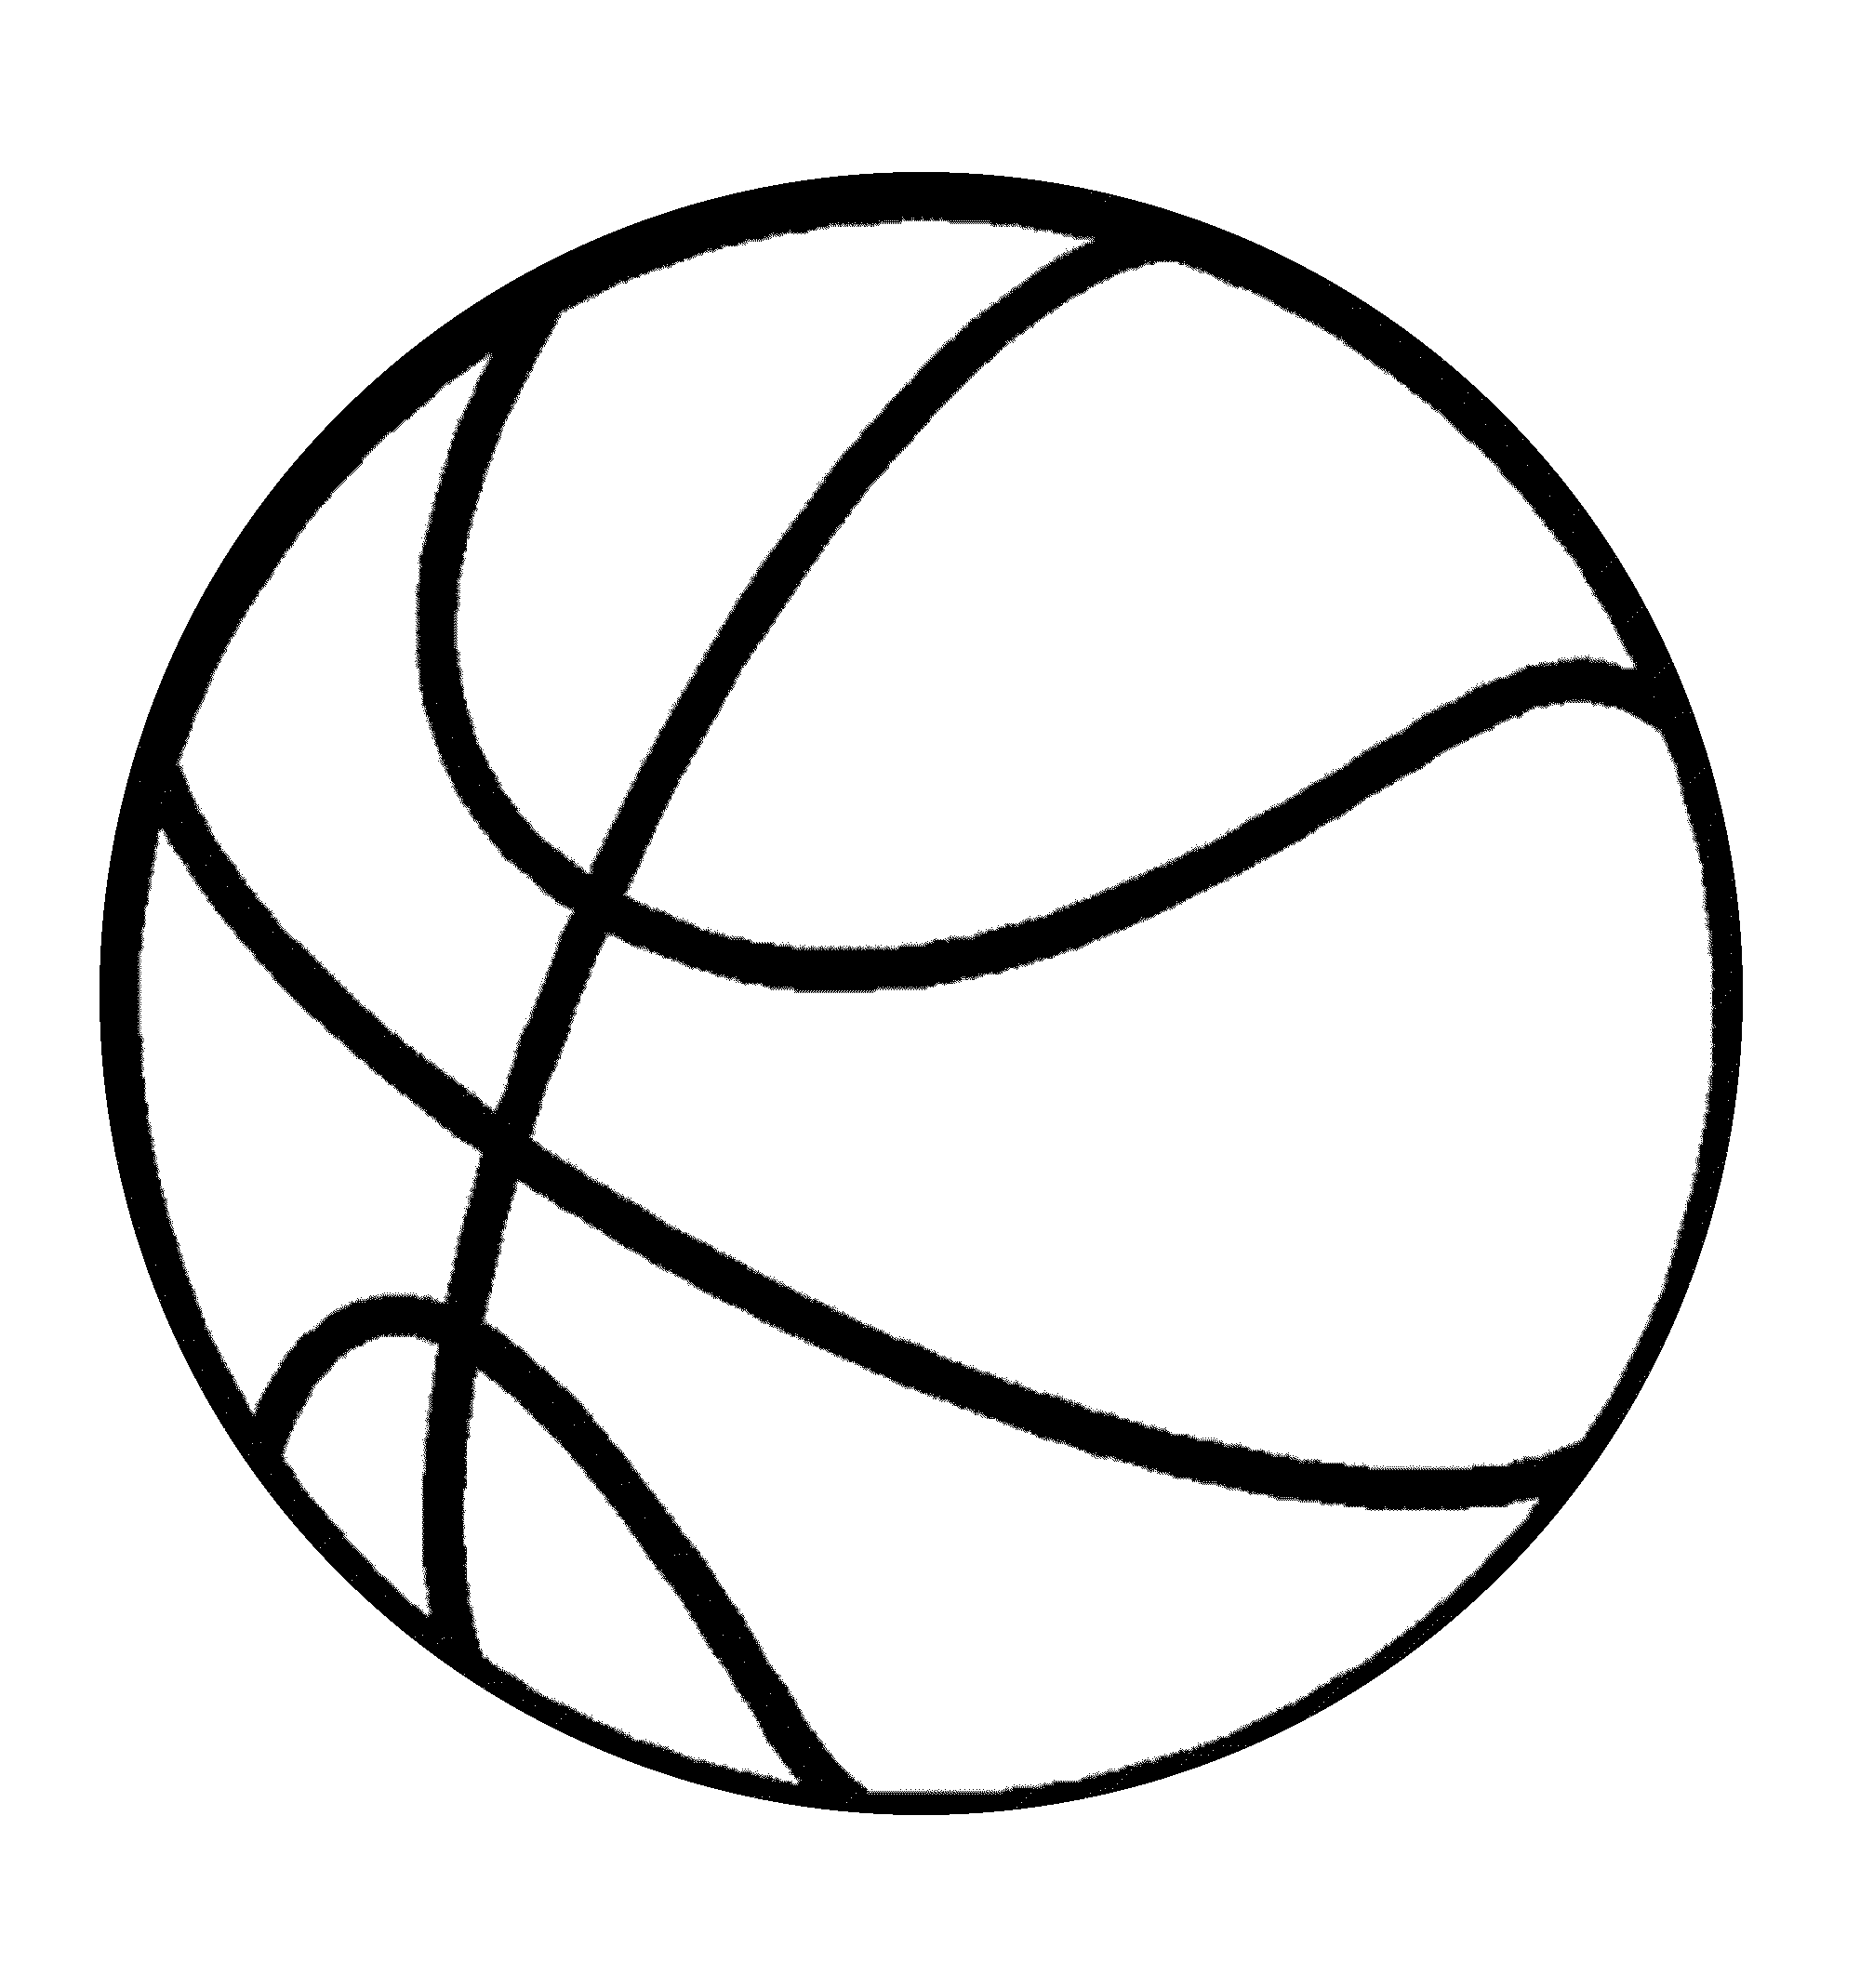 ball coloring pages - photo#44